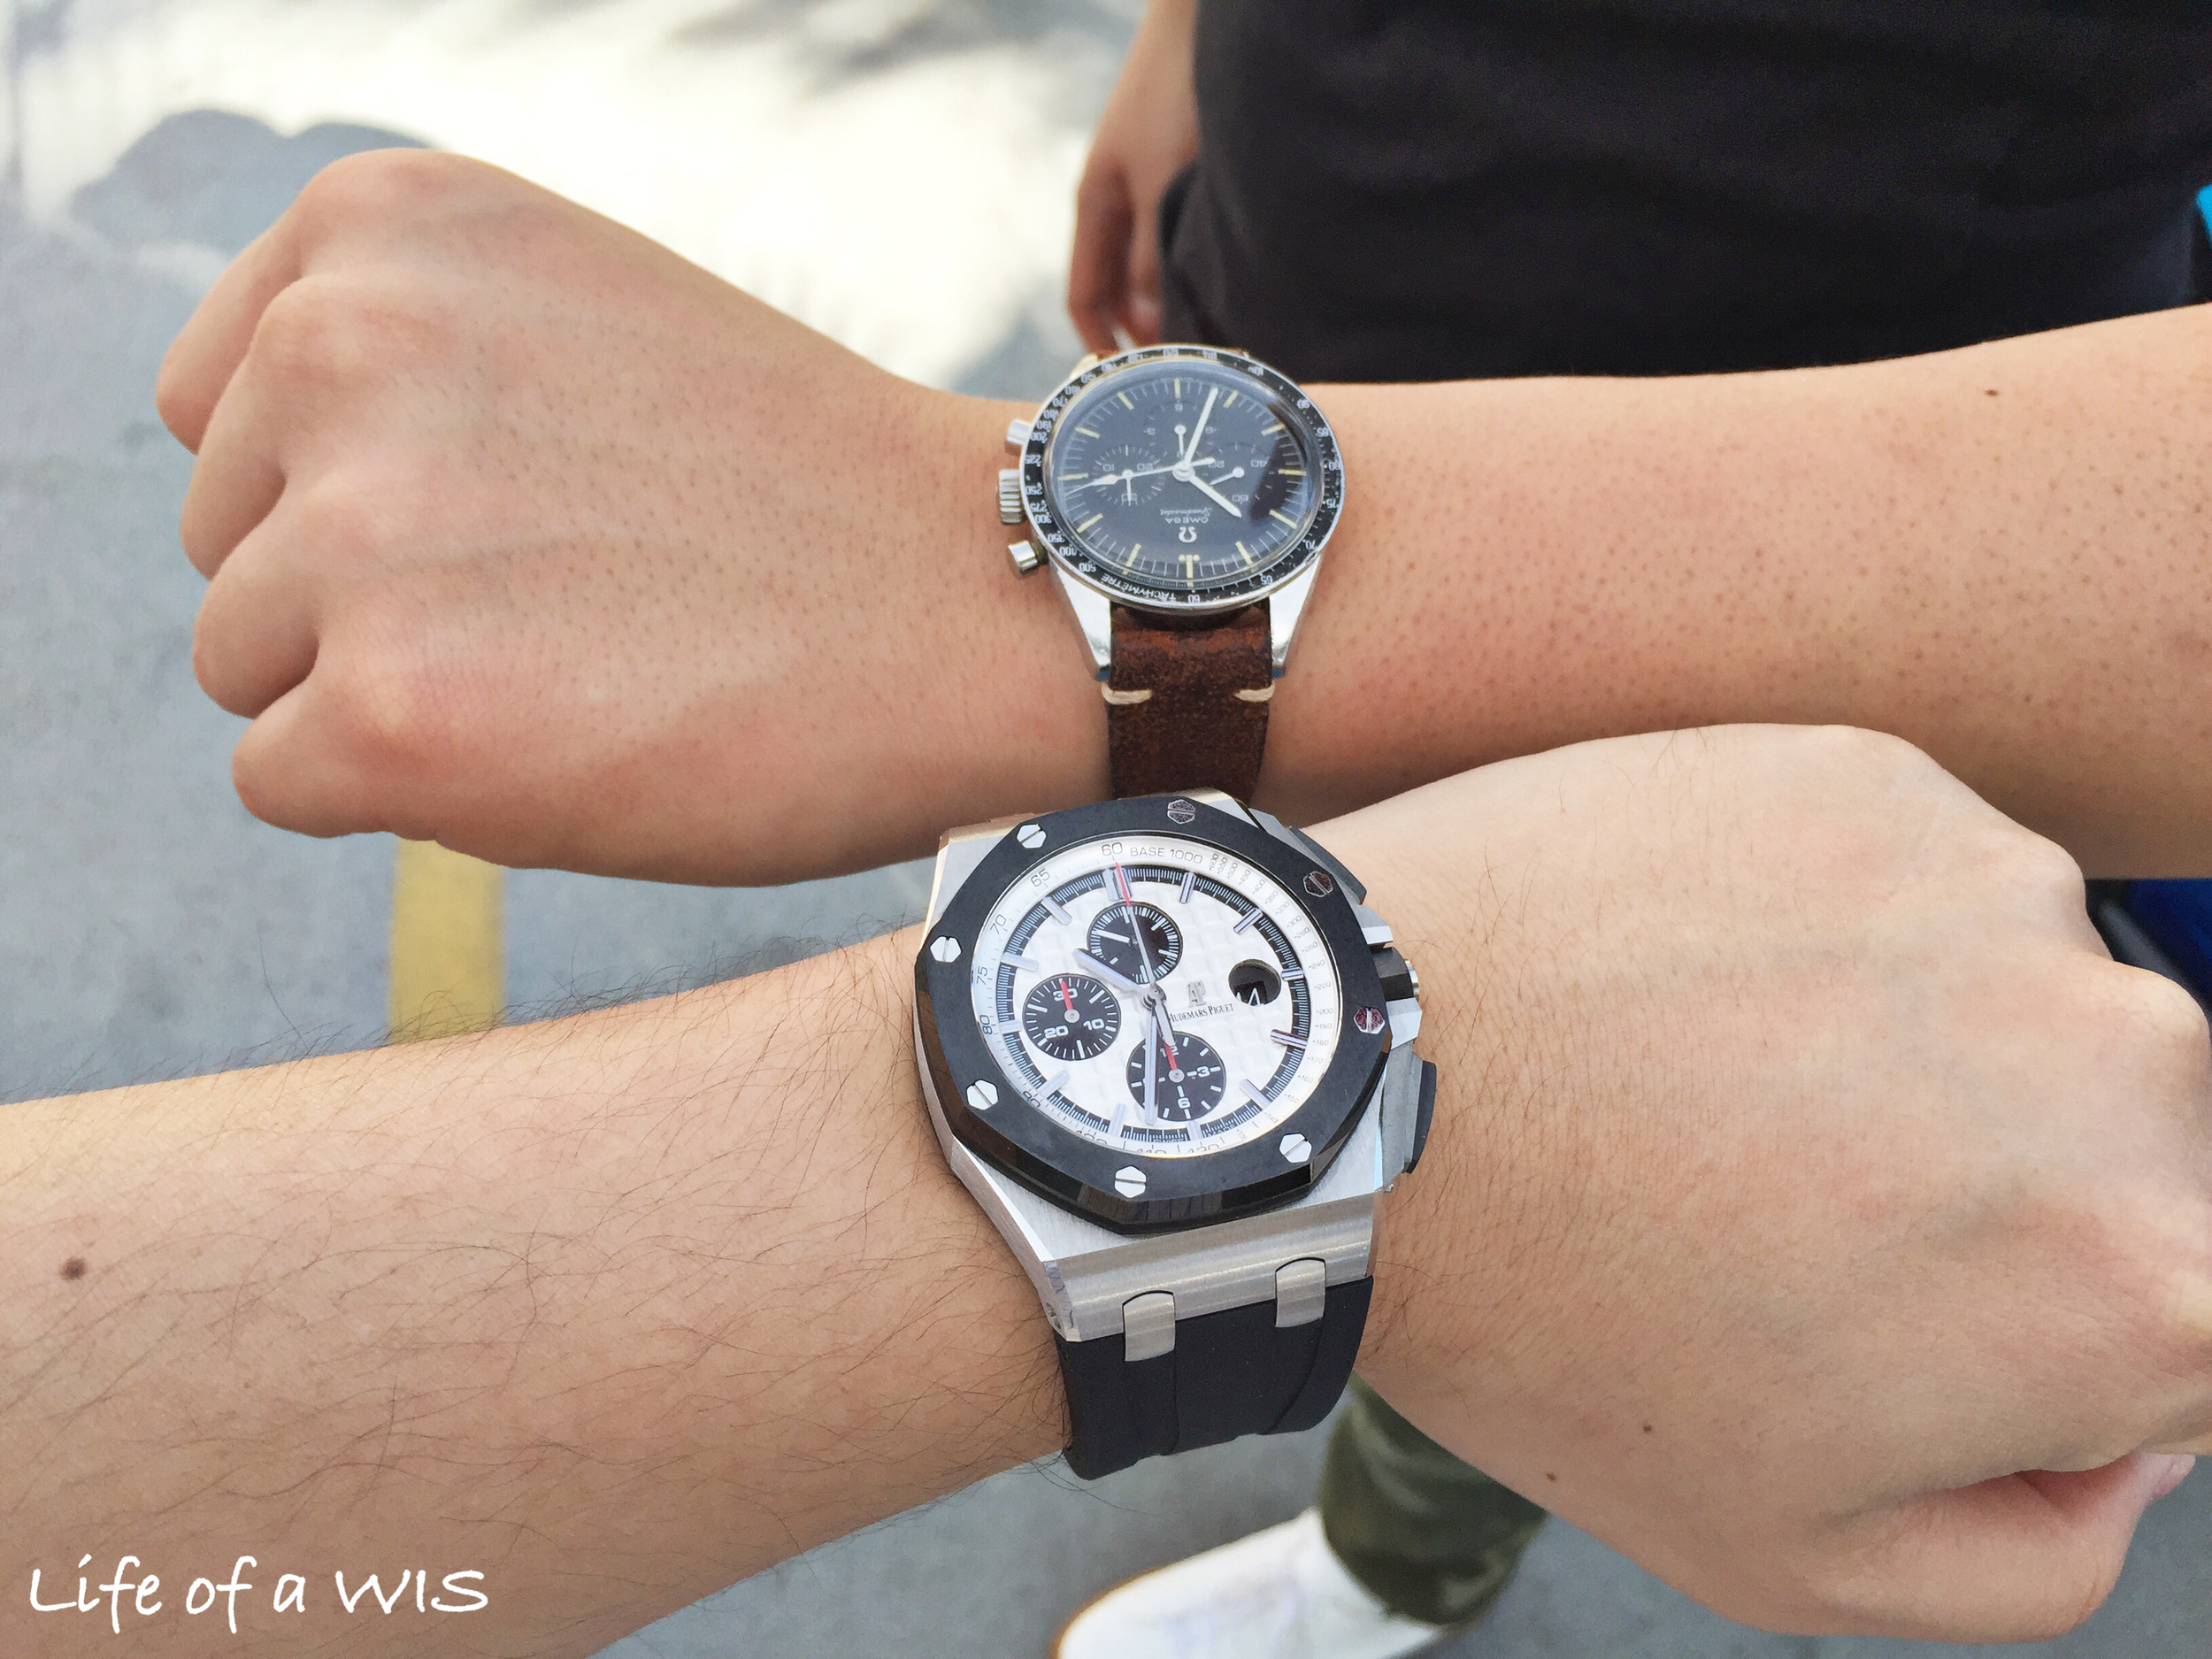 And a joint wrist shot with #LAWatchGang member  @djhsueh  to wrap up the event.